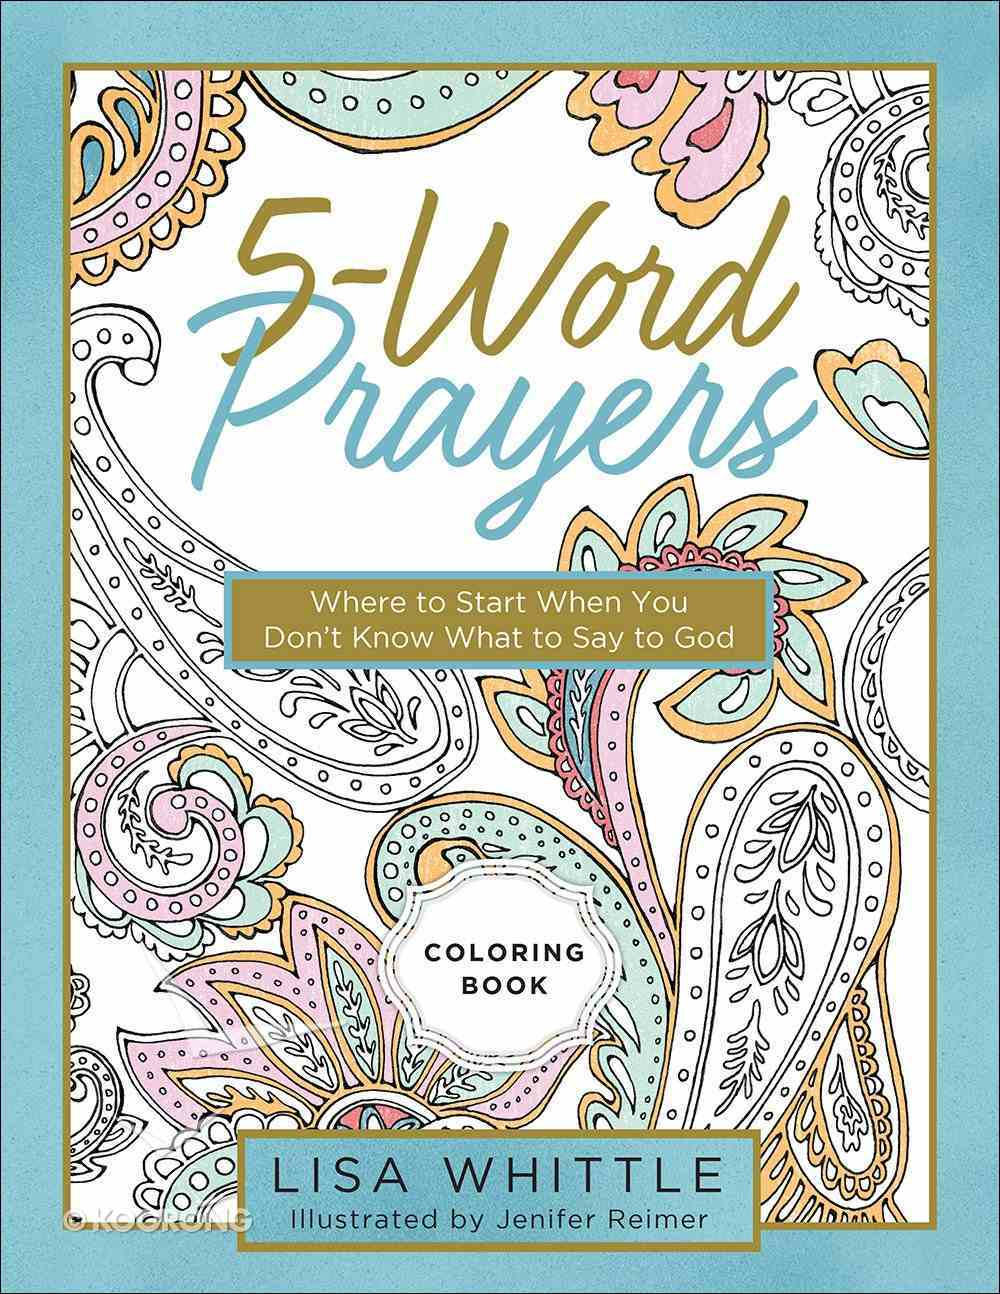 Acb: 5-Word Prayers - a Place to Start When You Don't Know What to Say to God Paperback